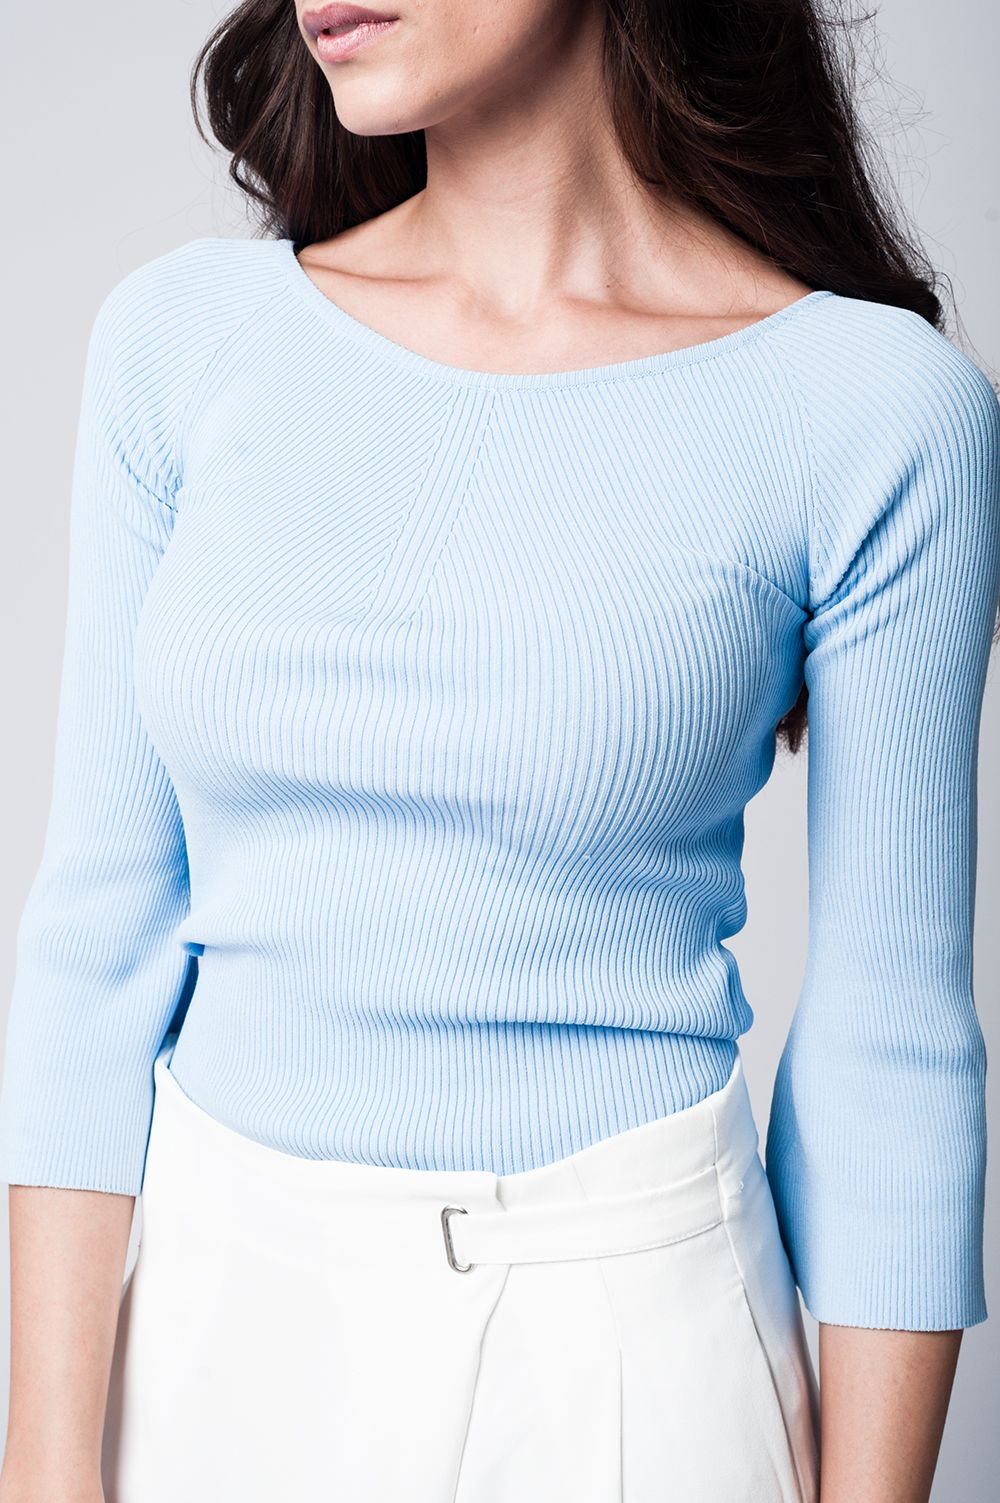 Blue Knitted Sweater With Texture Detail - CalicoMarket